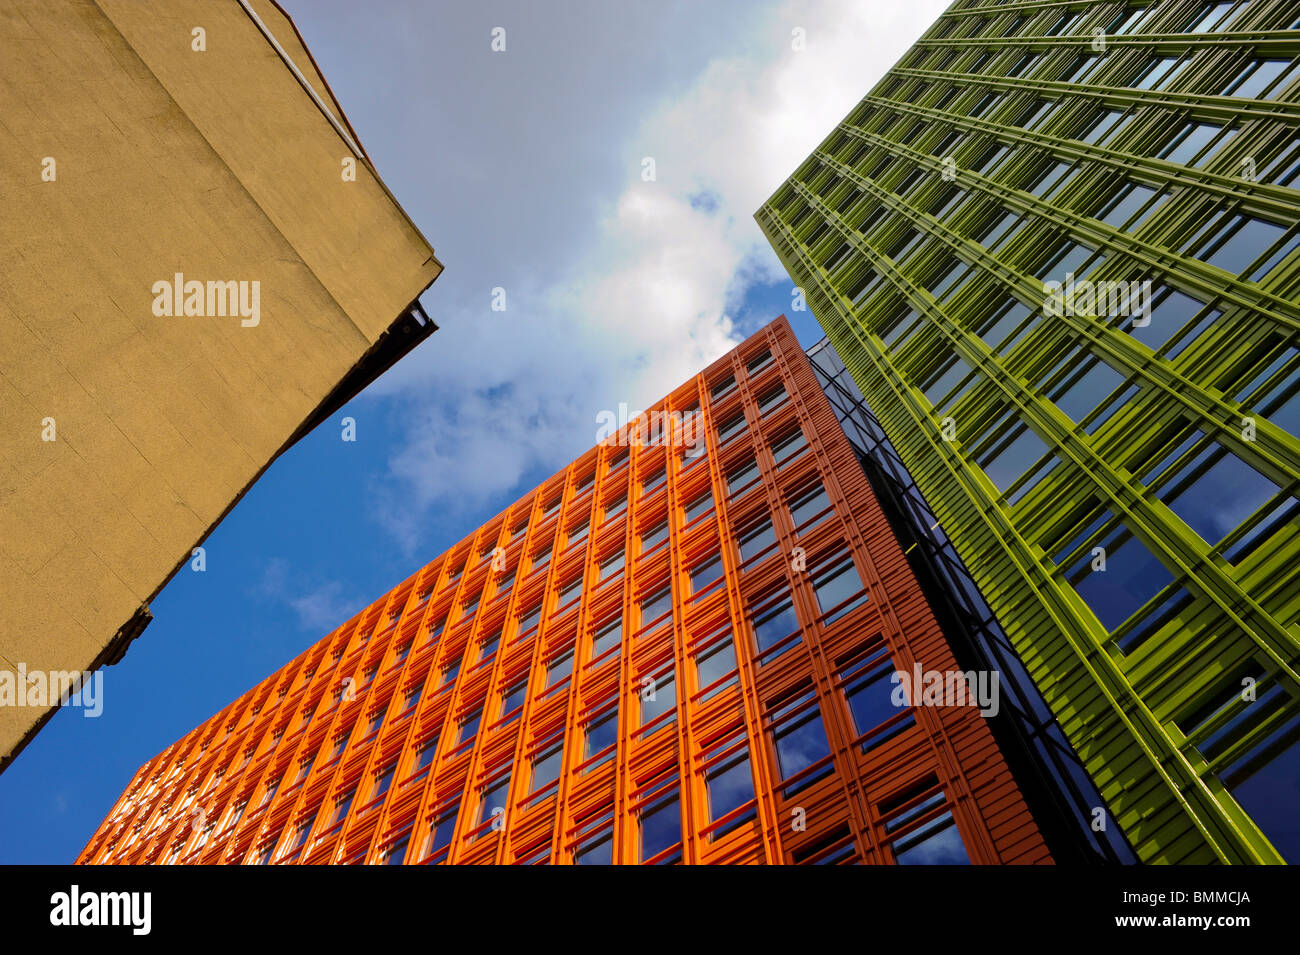 """Modern Architecture London England new construction, office buildings, """"central st. giles"""", """"modern"""